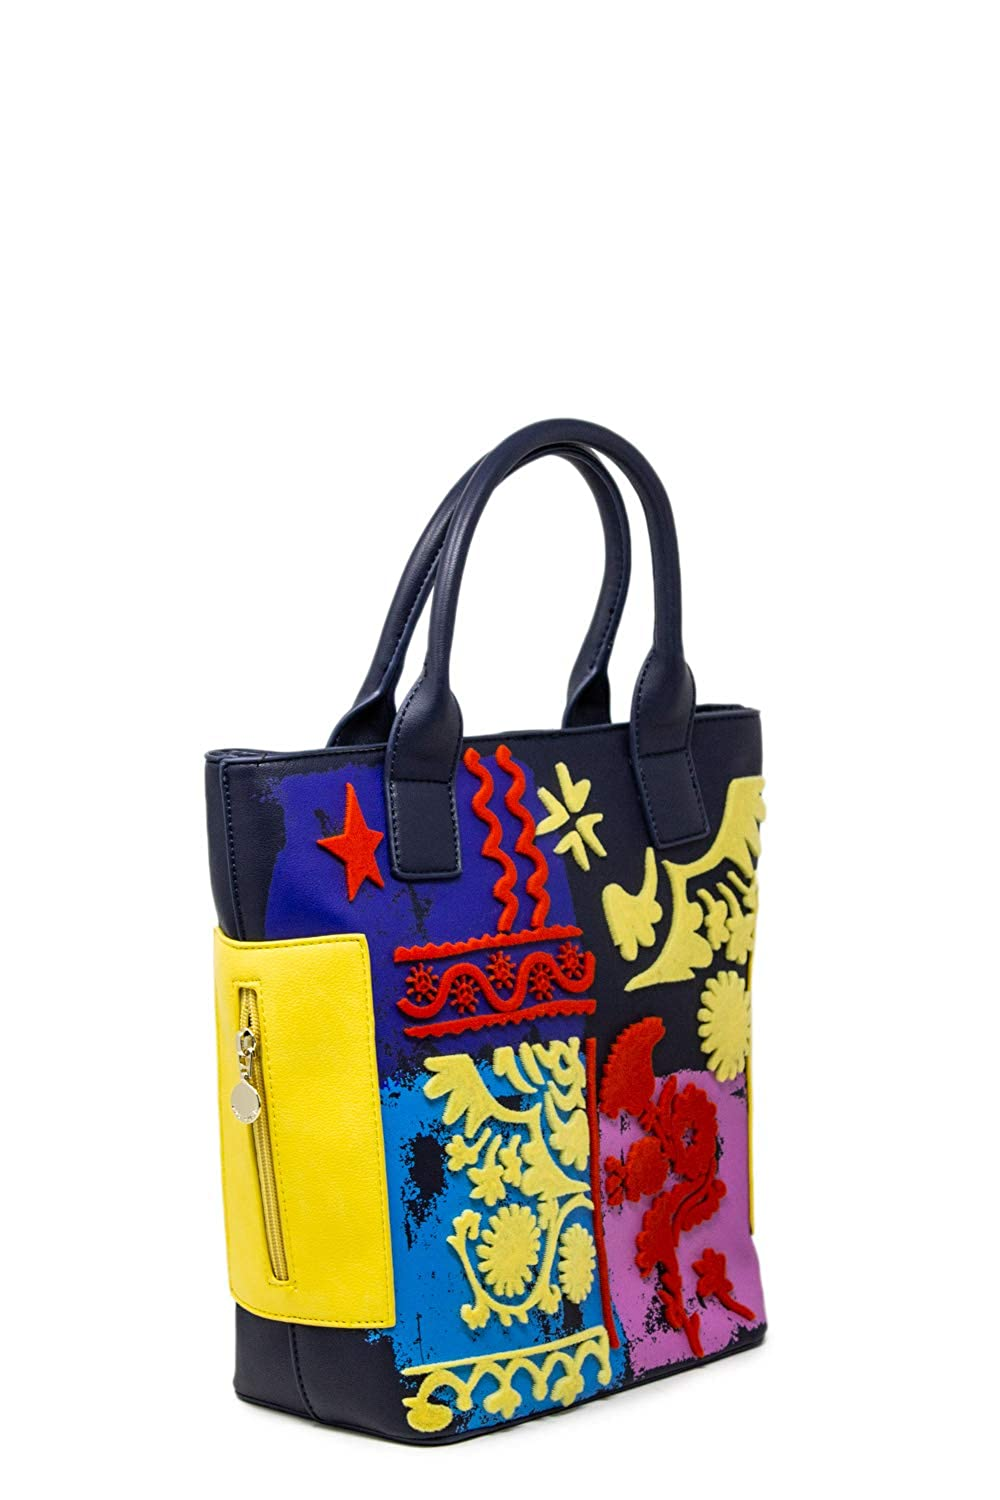 Amazon.com: Desigual Woman bag bols loki shibuya 19waxpb4 ...